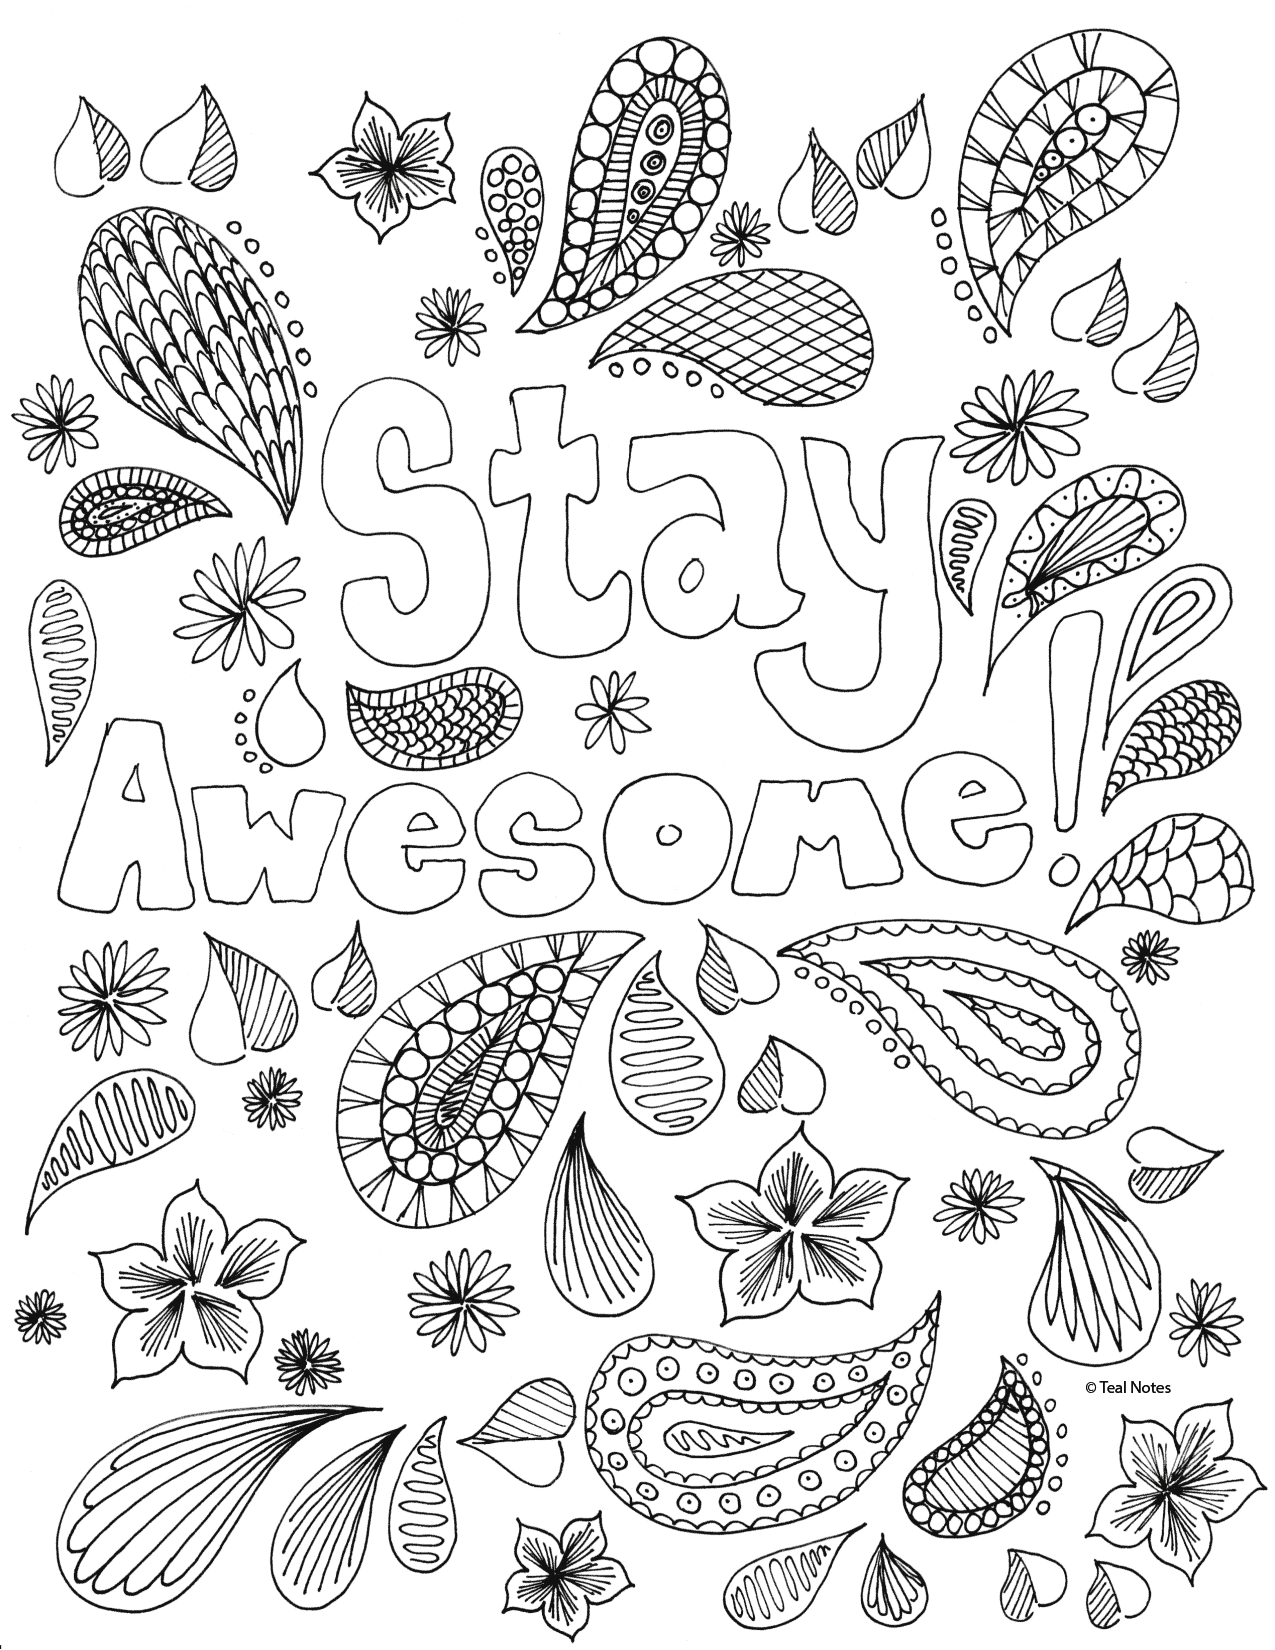 coloring sheets you can print 7 thanksgiving coloring pages you can print you print sheets can coloring